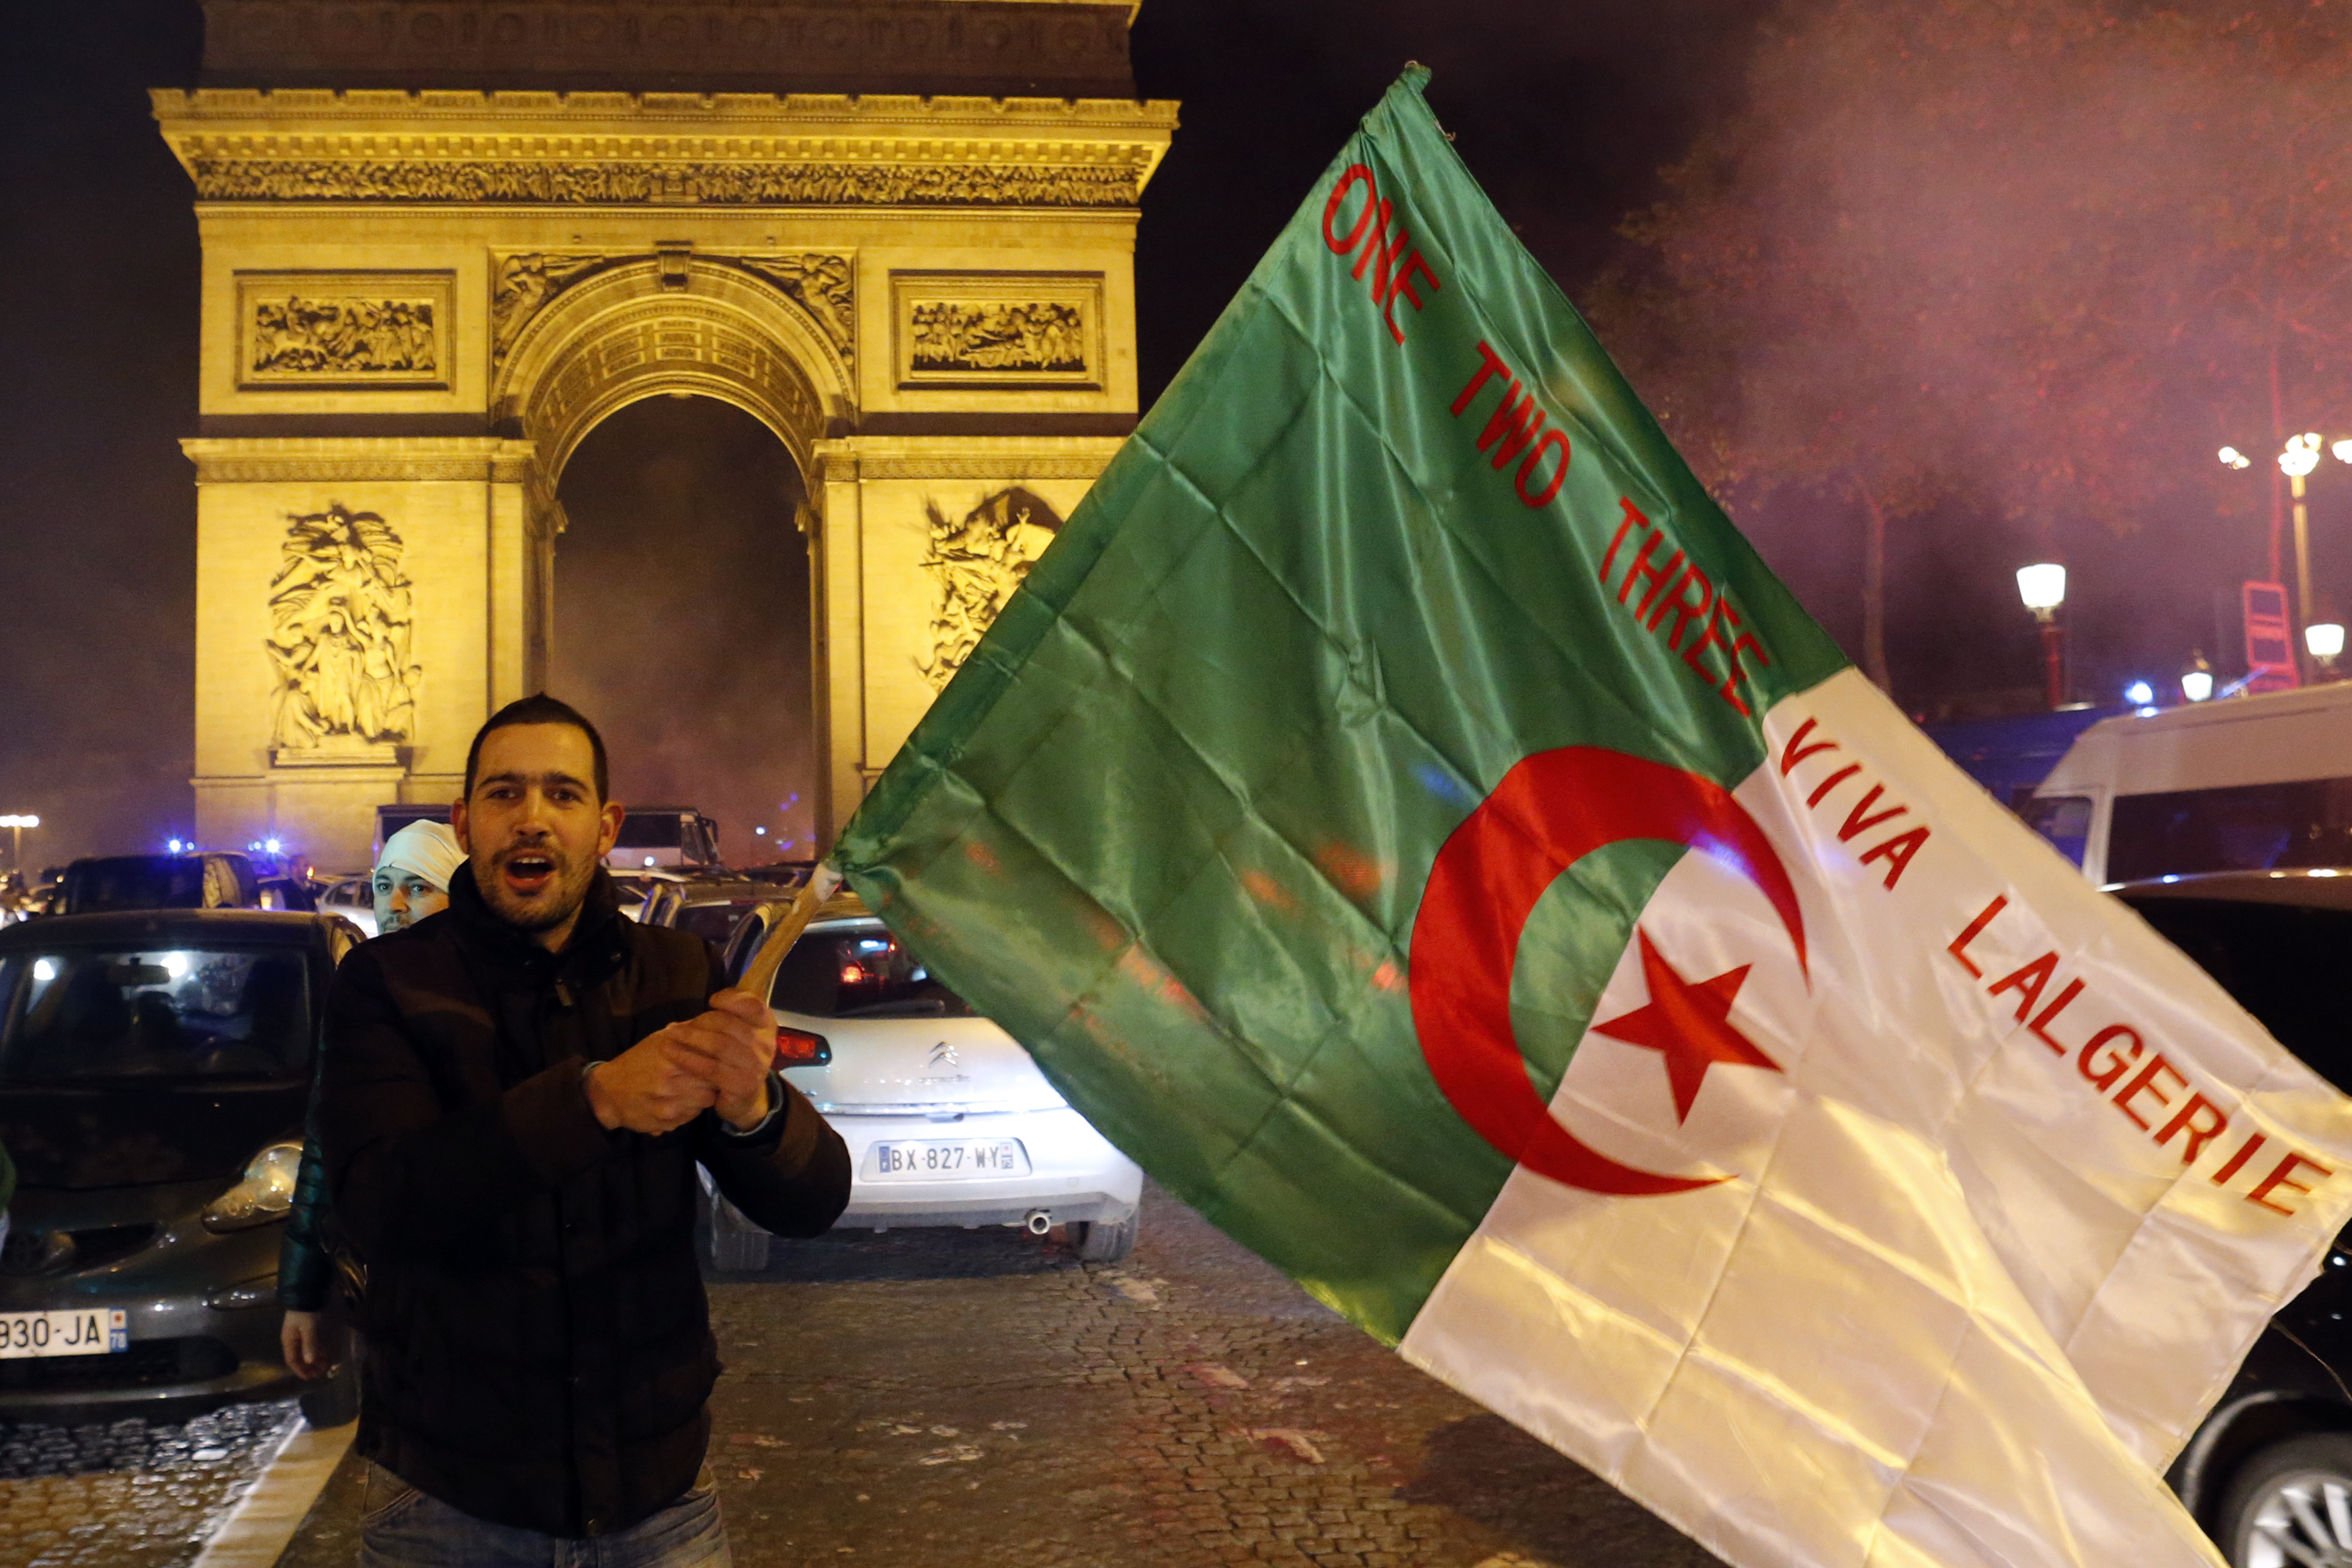 An Algerian soccer fan waves the Algerian flag in front of the Arc de Triomphe in Paris. With 16 French-born players on the Algerian team, Franco-Algerians have celebrated the Algerian victories with huge celebrations in French cities.